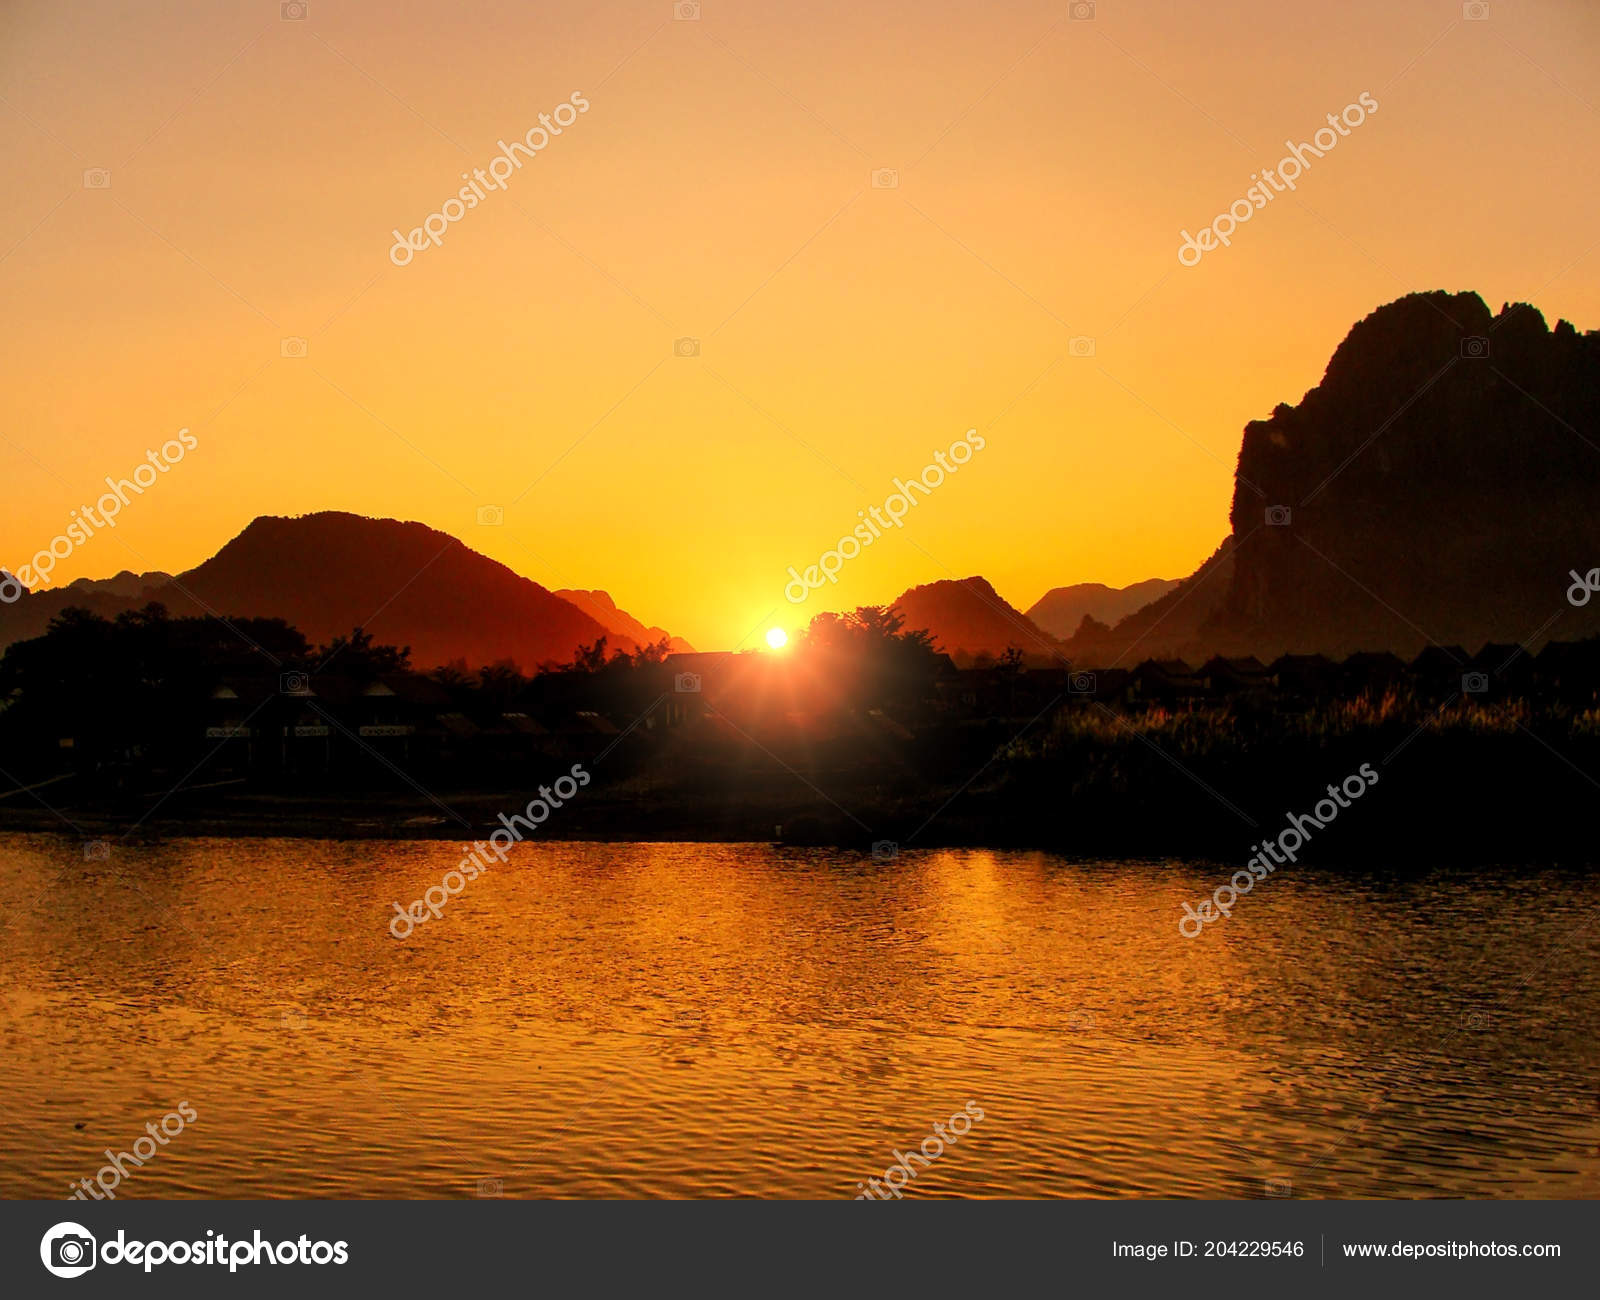 Sunset Nam Song River Silhouetted Rock Formations Vang Vieng